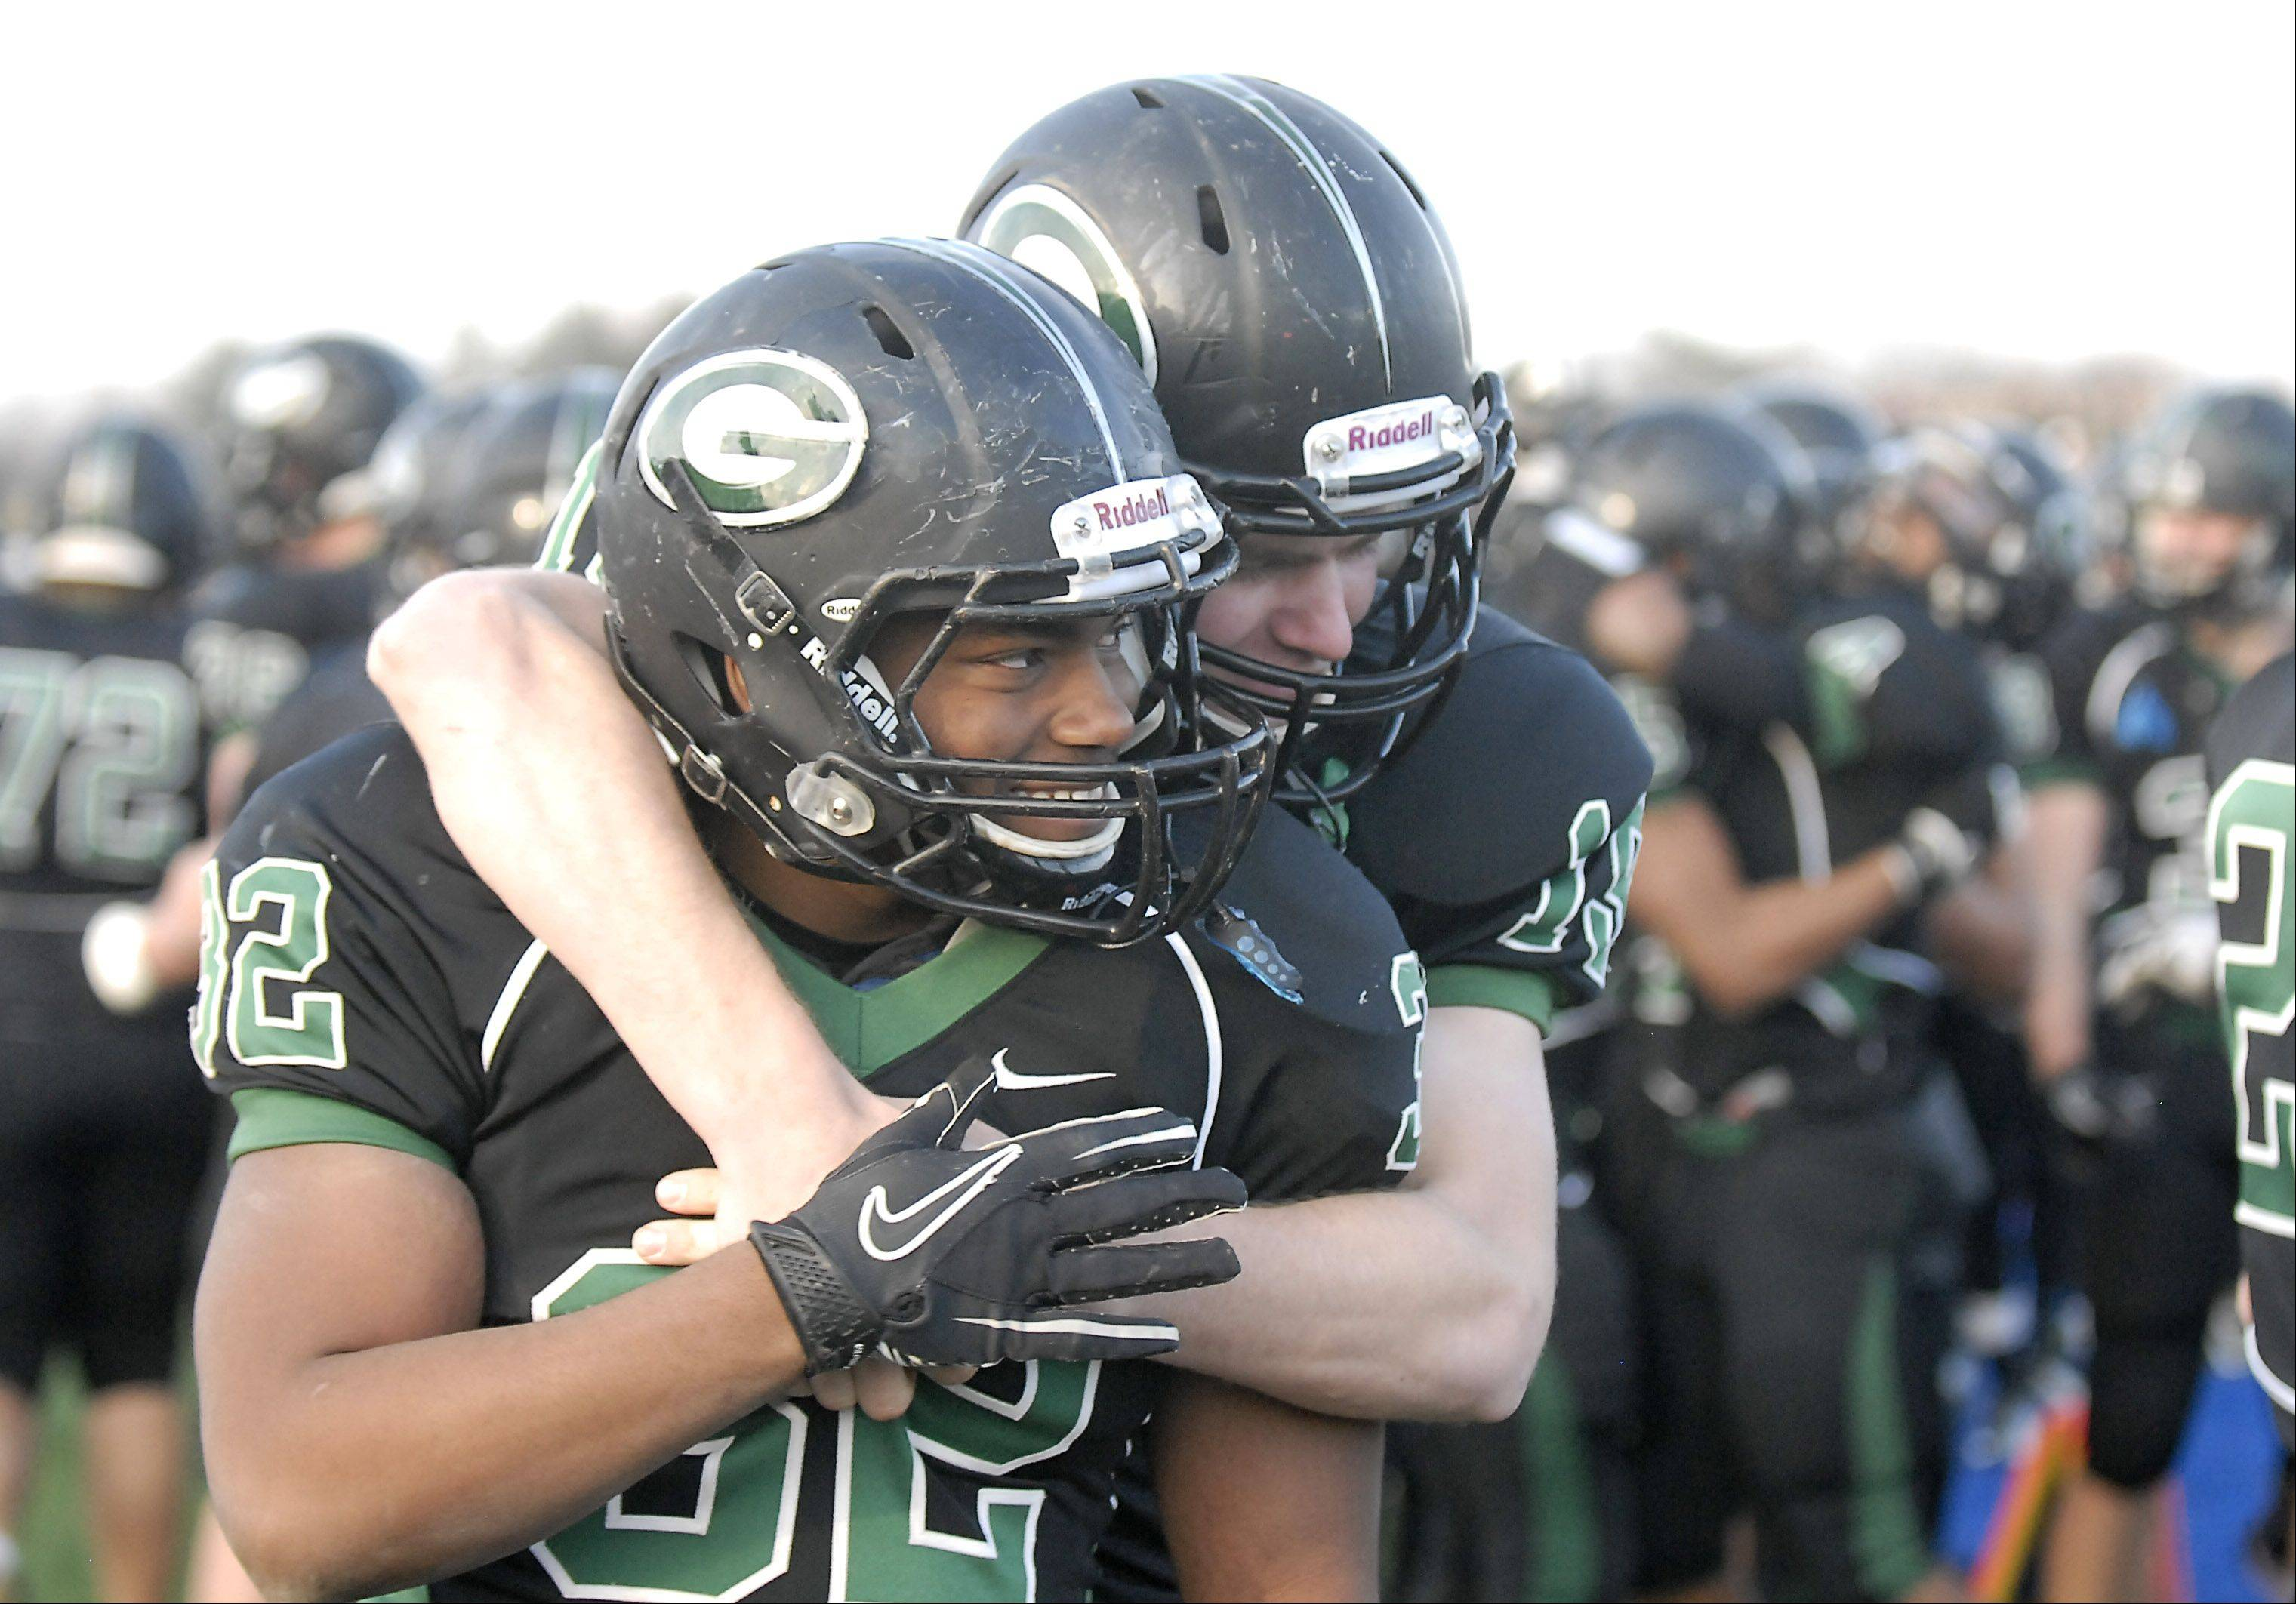 Glenbard West's Patrick Wilder gets a hug from teammate Hayden Lekacz as the final seconds tick down to their 7A semi-finals victory over Lake Zurich on Saturday, Nov. 17.